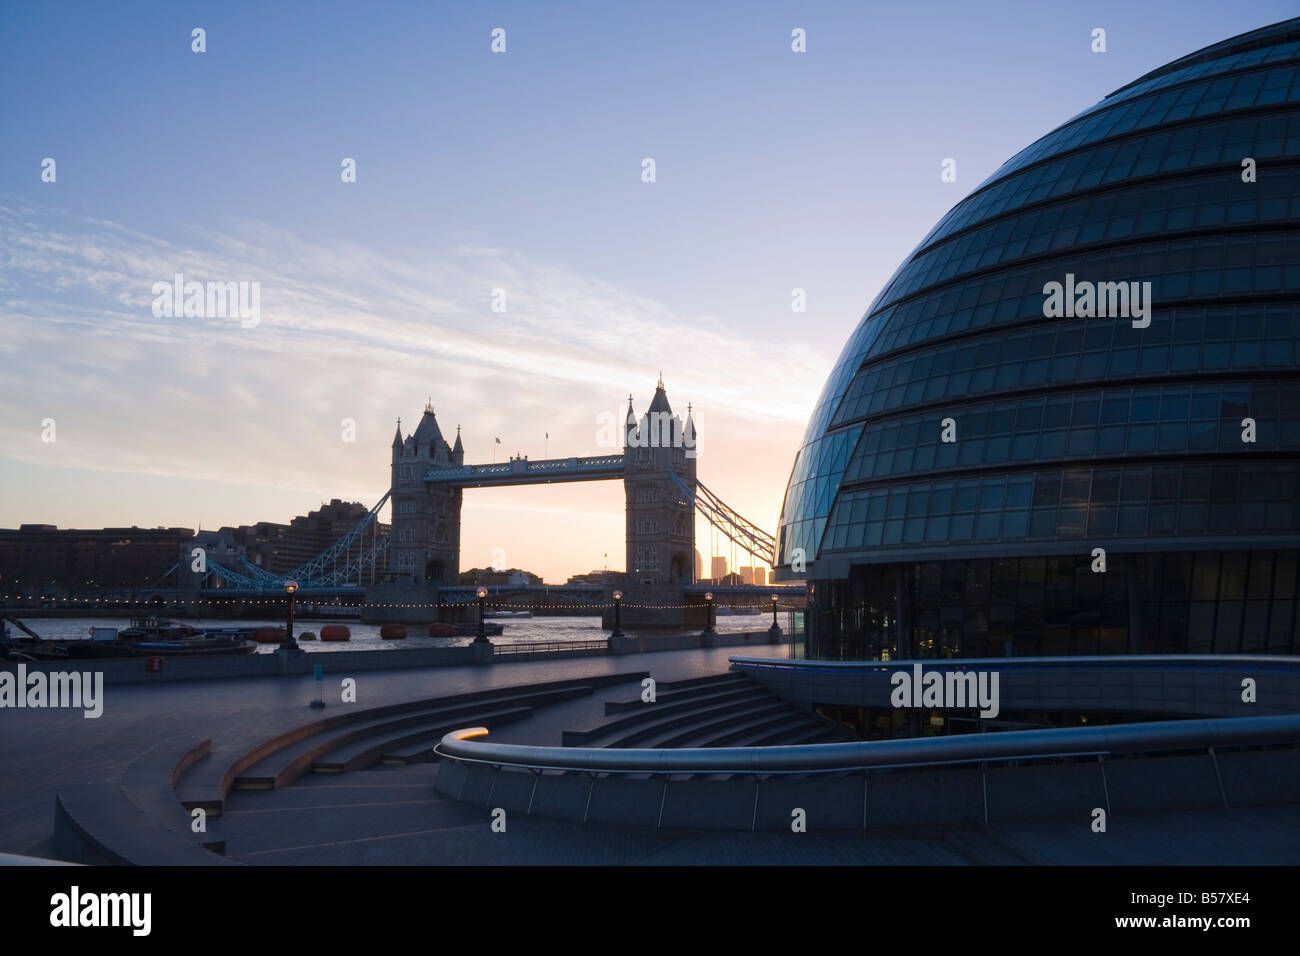 City Hall (London Assembly building) on Queens Walk, with Tower Bridge beyond, London, England, United Kingdom, - Stock Image